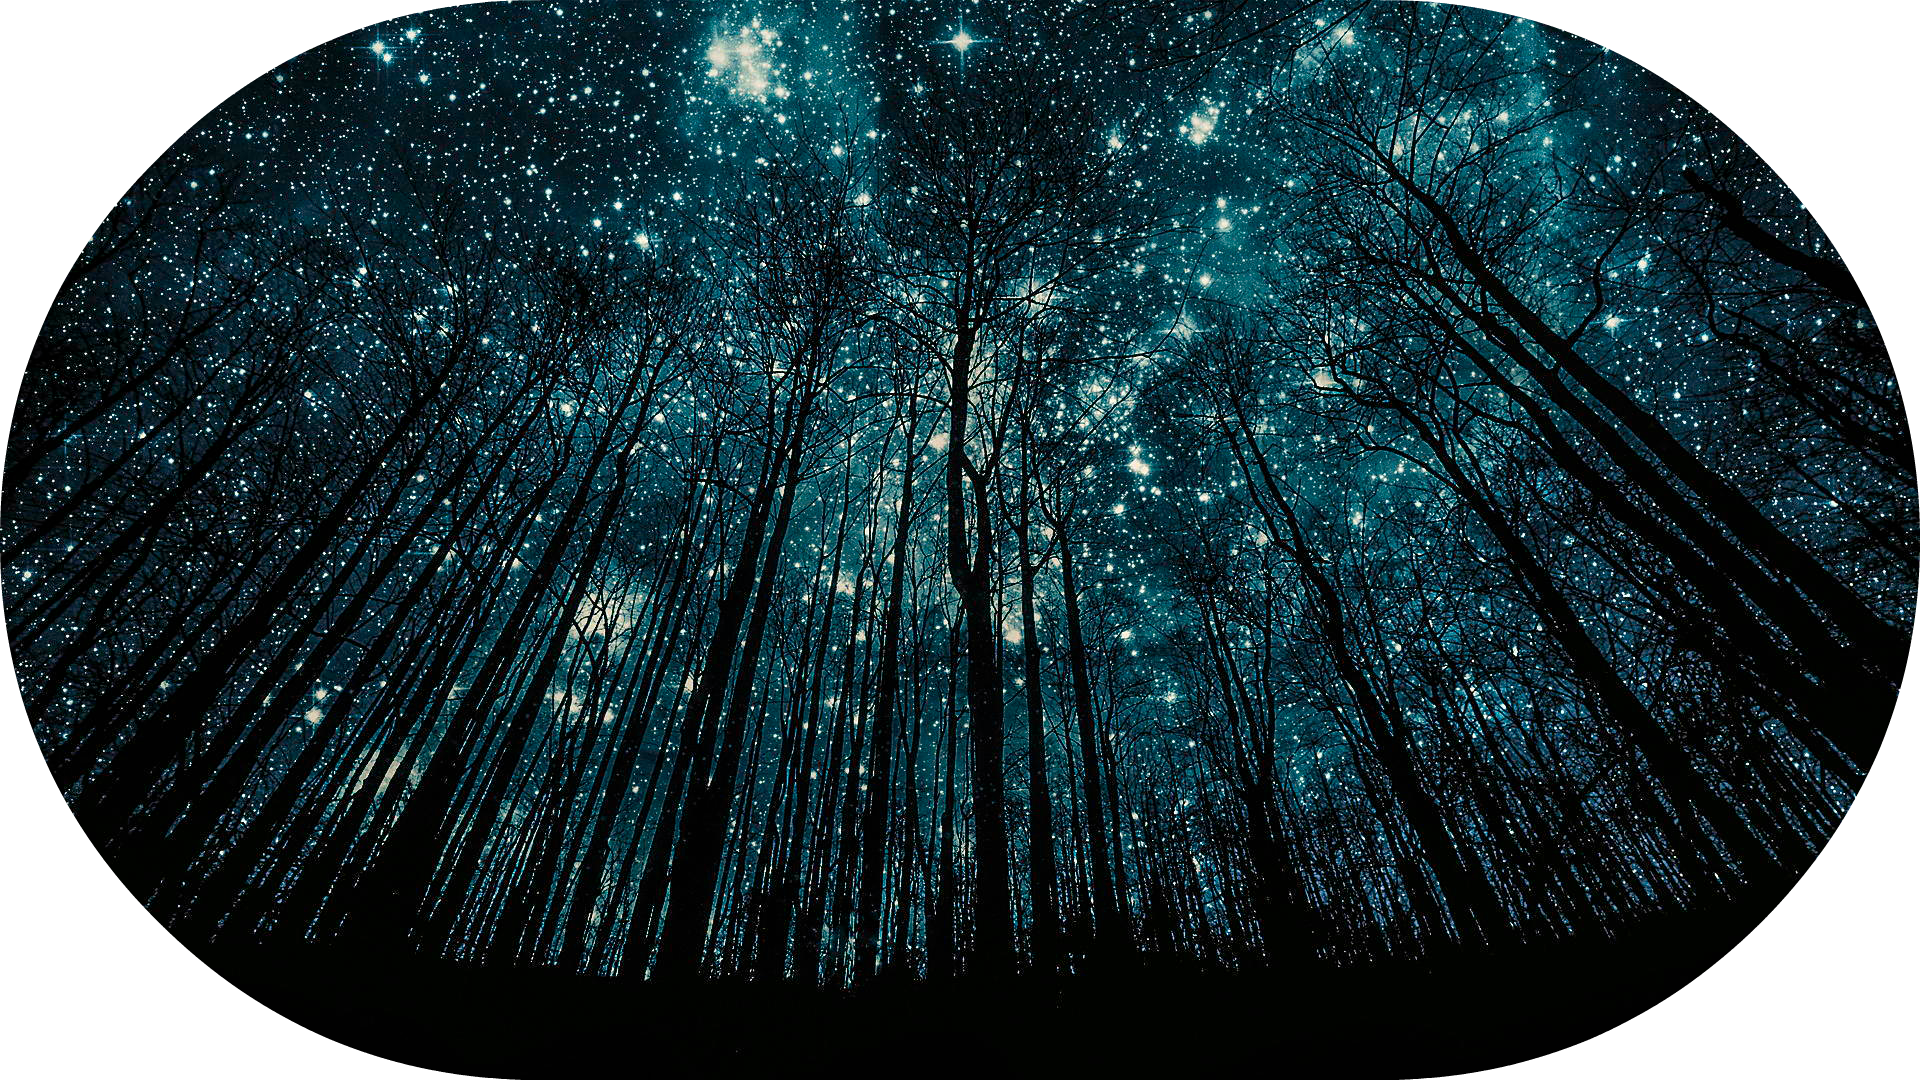 Night sky png. Image wallpapers full hd